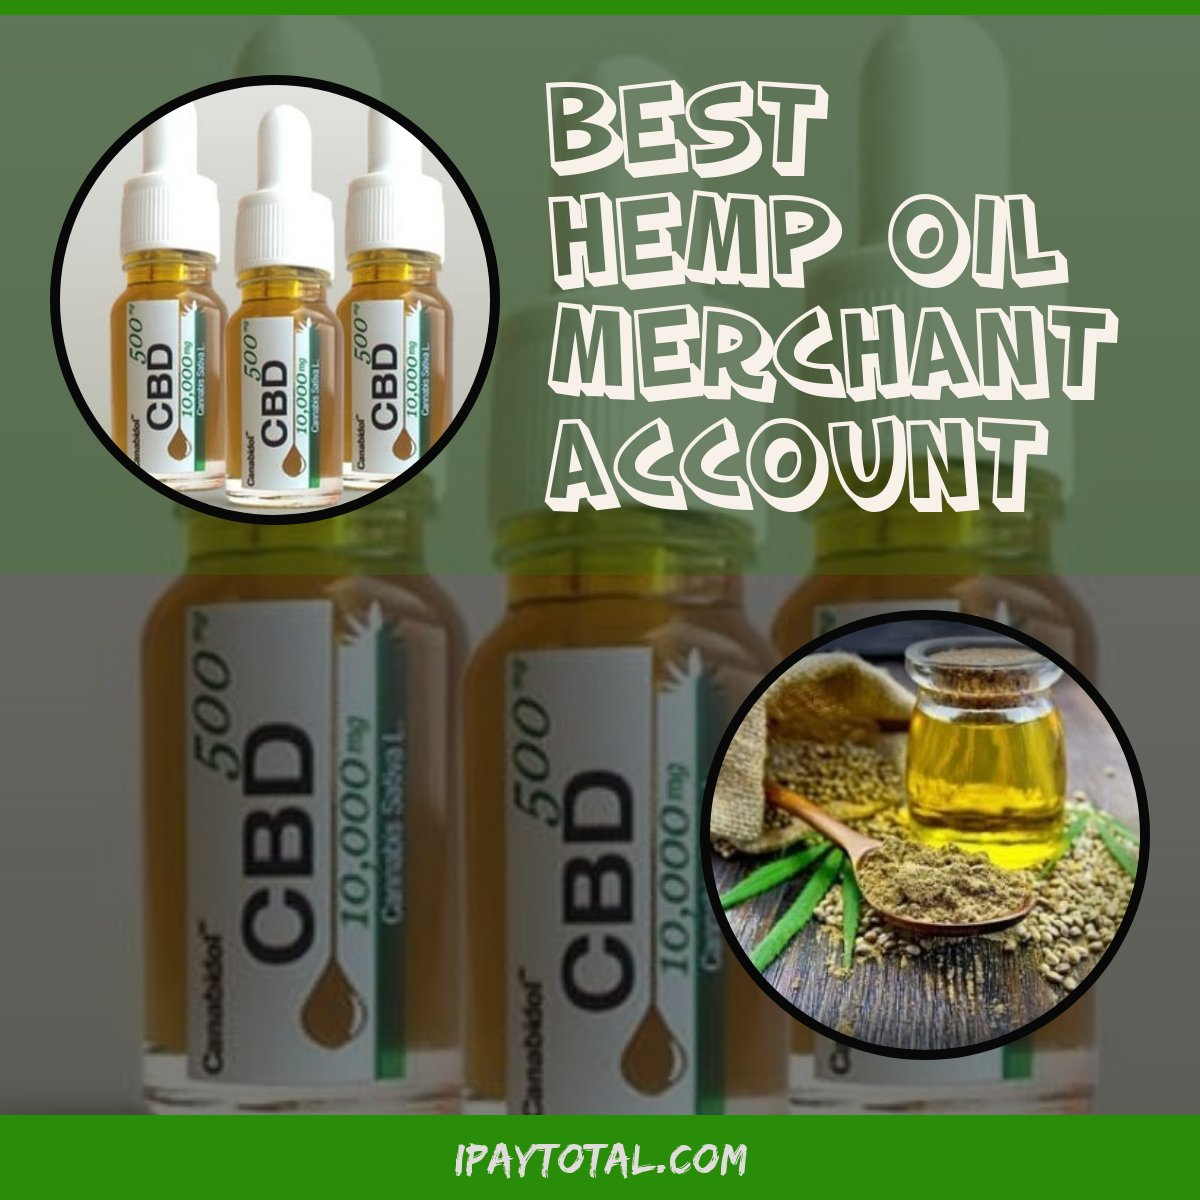 Business Online Moeslim: Hemp Oil Business